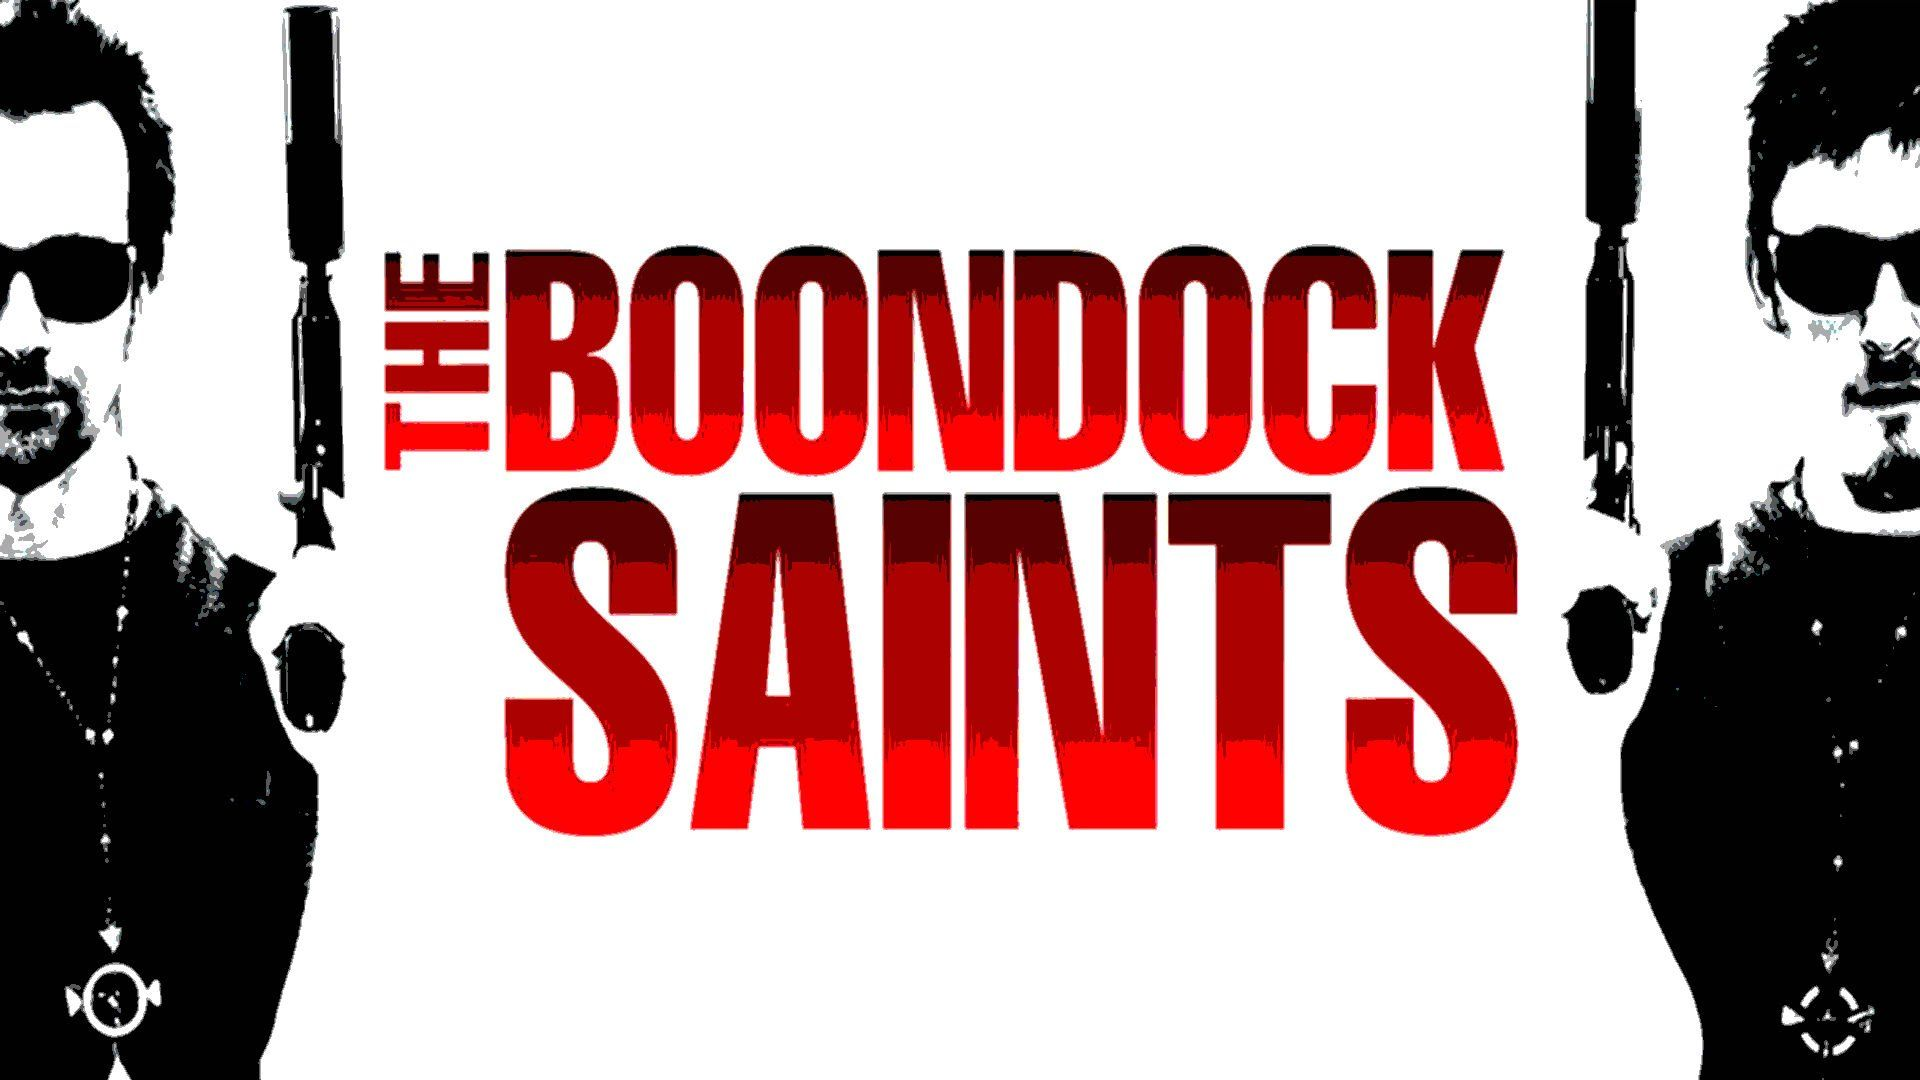 1920x1080 Ultra HD Boondock Saints Wallpapers #3PH8E2Z - 4USkY